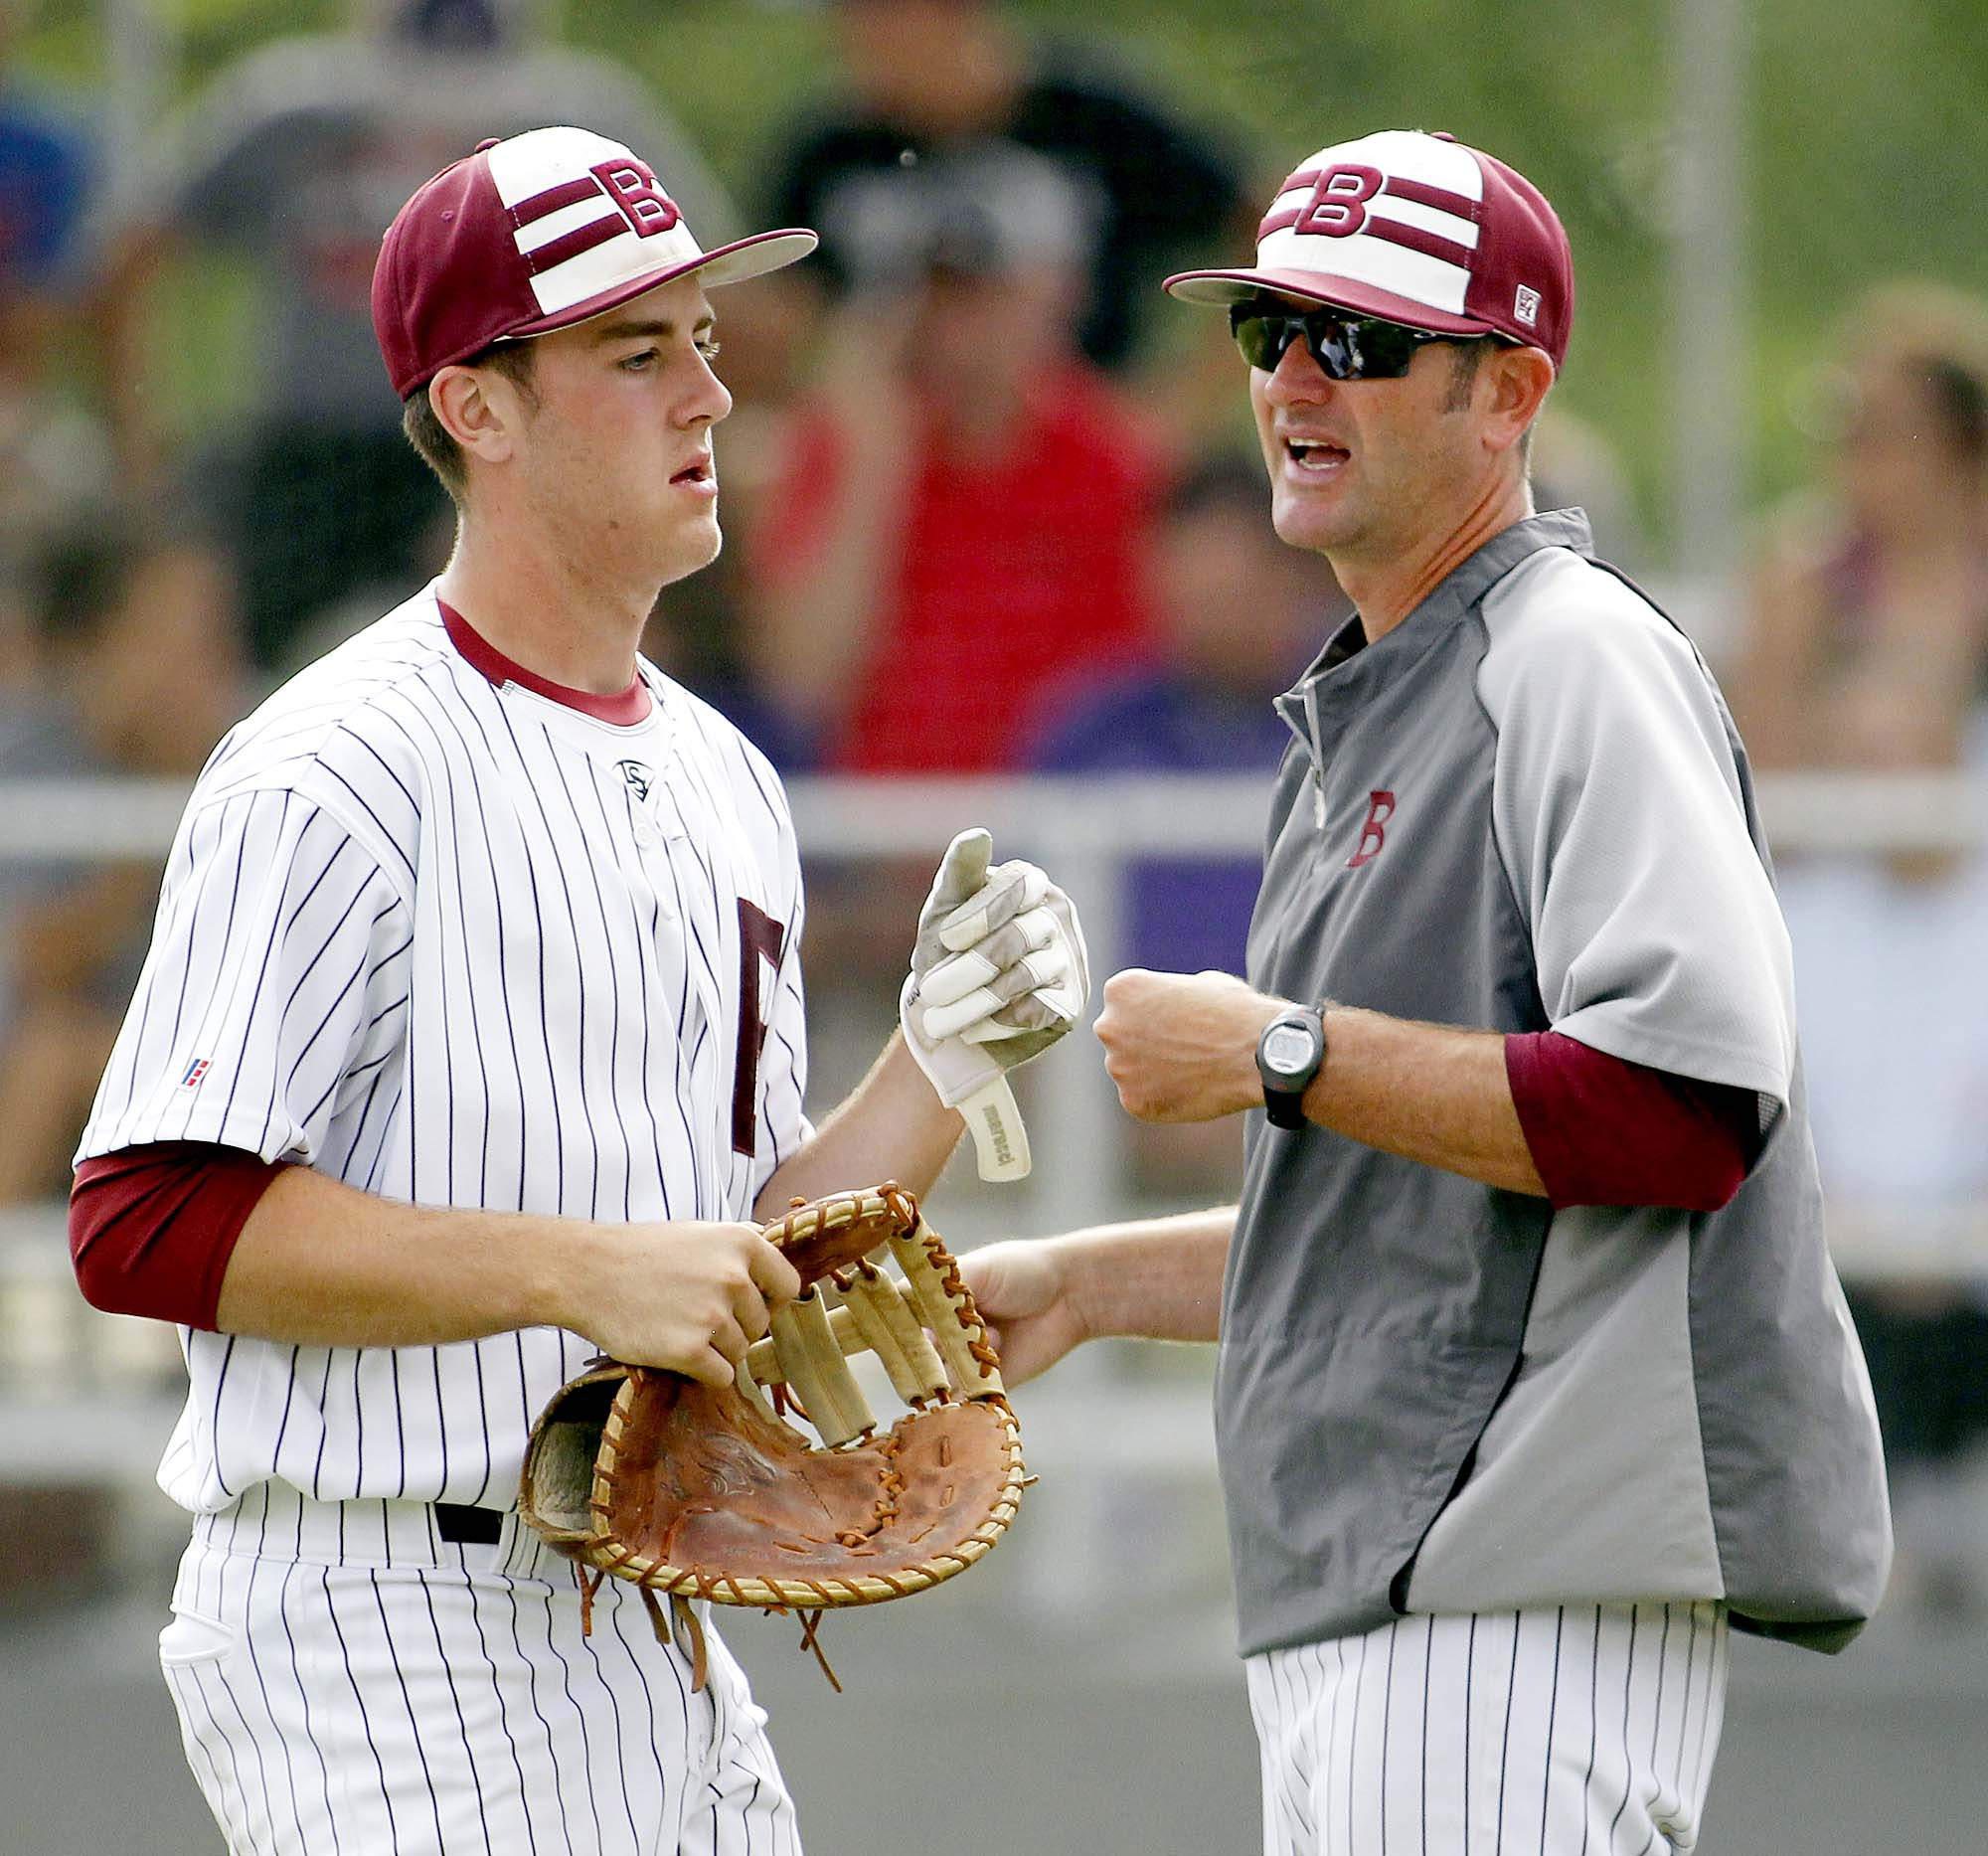 Benton head coach Brett Blondi congratulates Parker Williams following the end of the second inning Wednesday during the IHSA Class 2A Regional at Harrisburg. Benton went on to beat Eldorado 11-3.